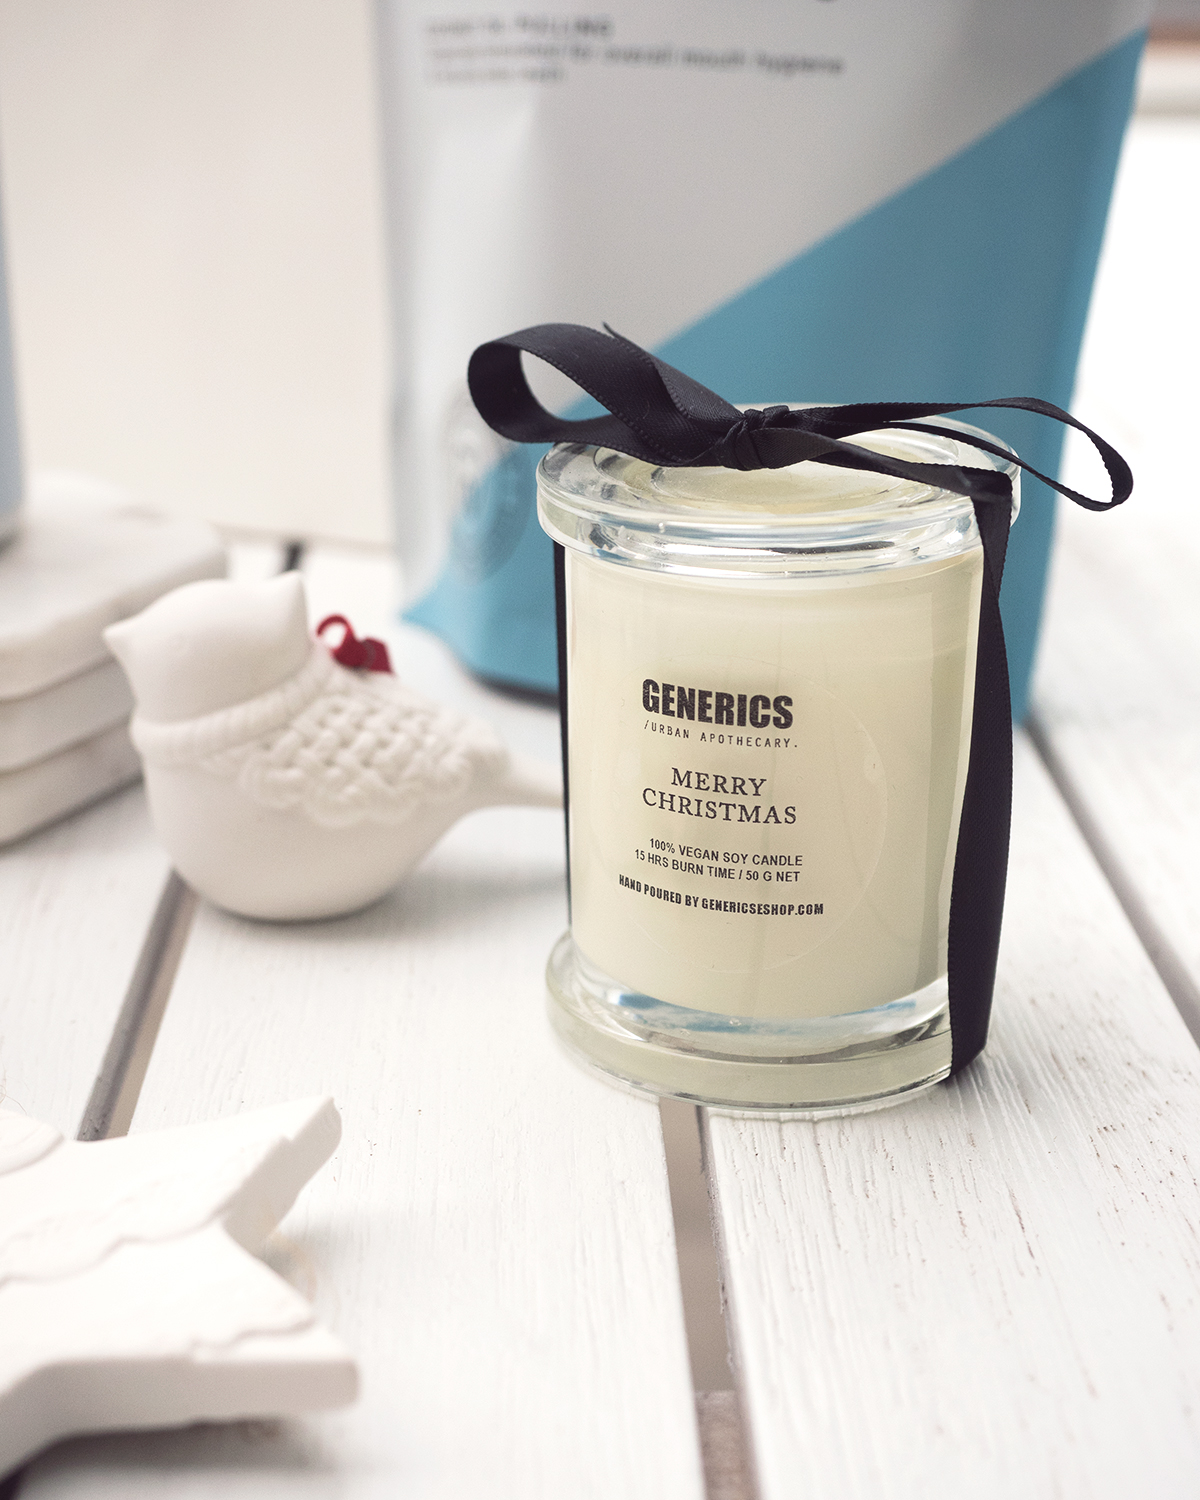 Perth picks for local gifts this Christmas from Inspiring Wit lifestyle blogger, Generics vegan soy candle